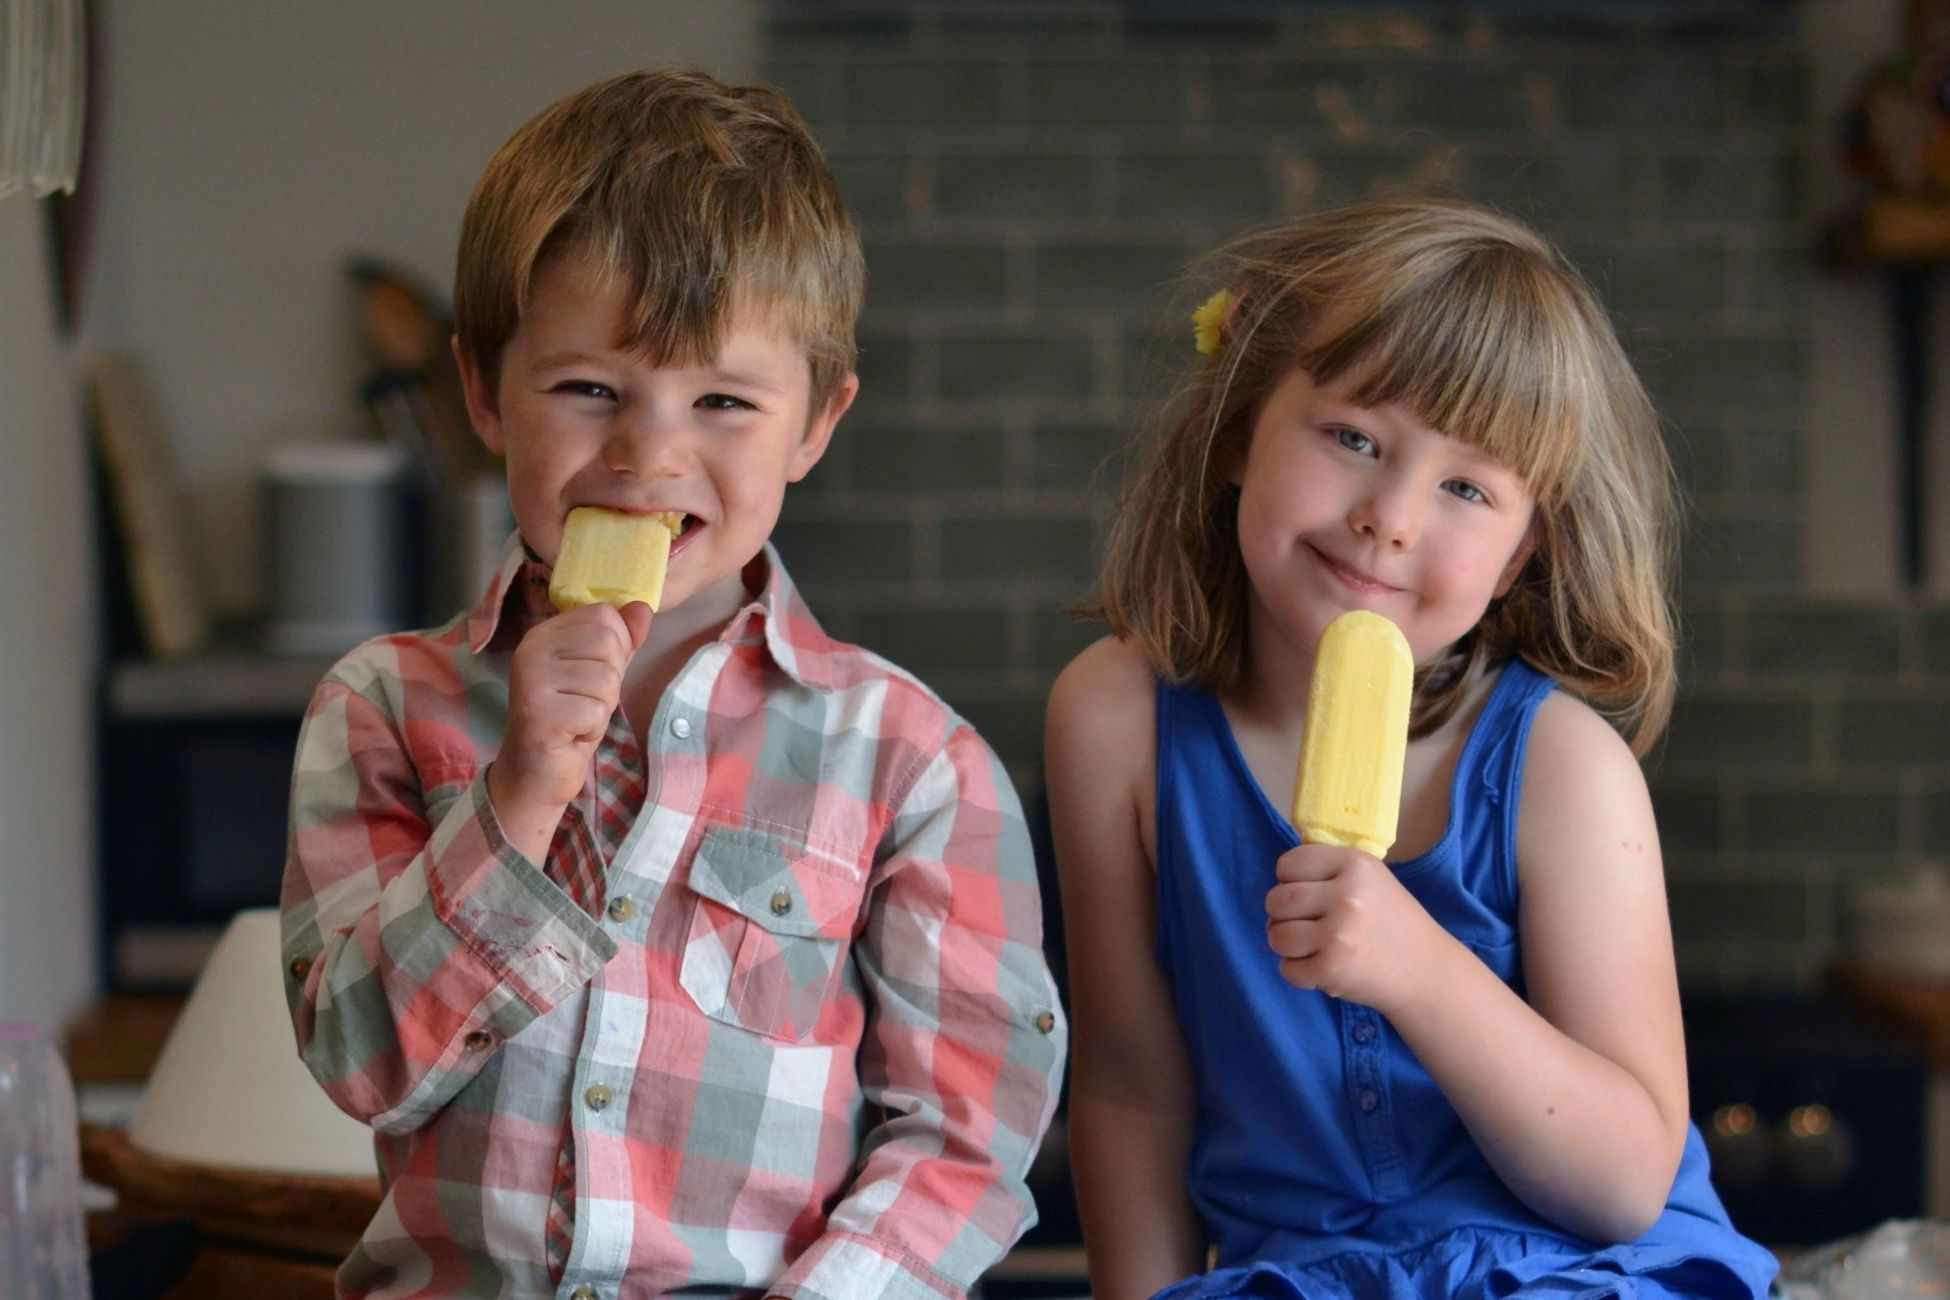 Two young children eating ice lollies in a kitchen